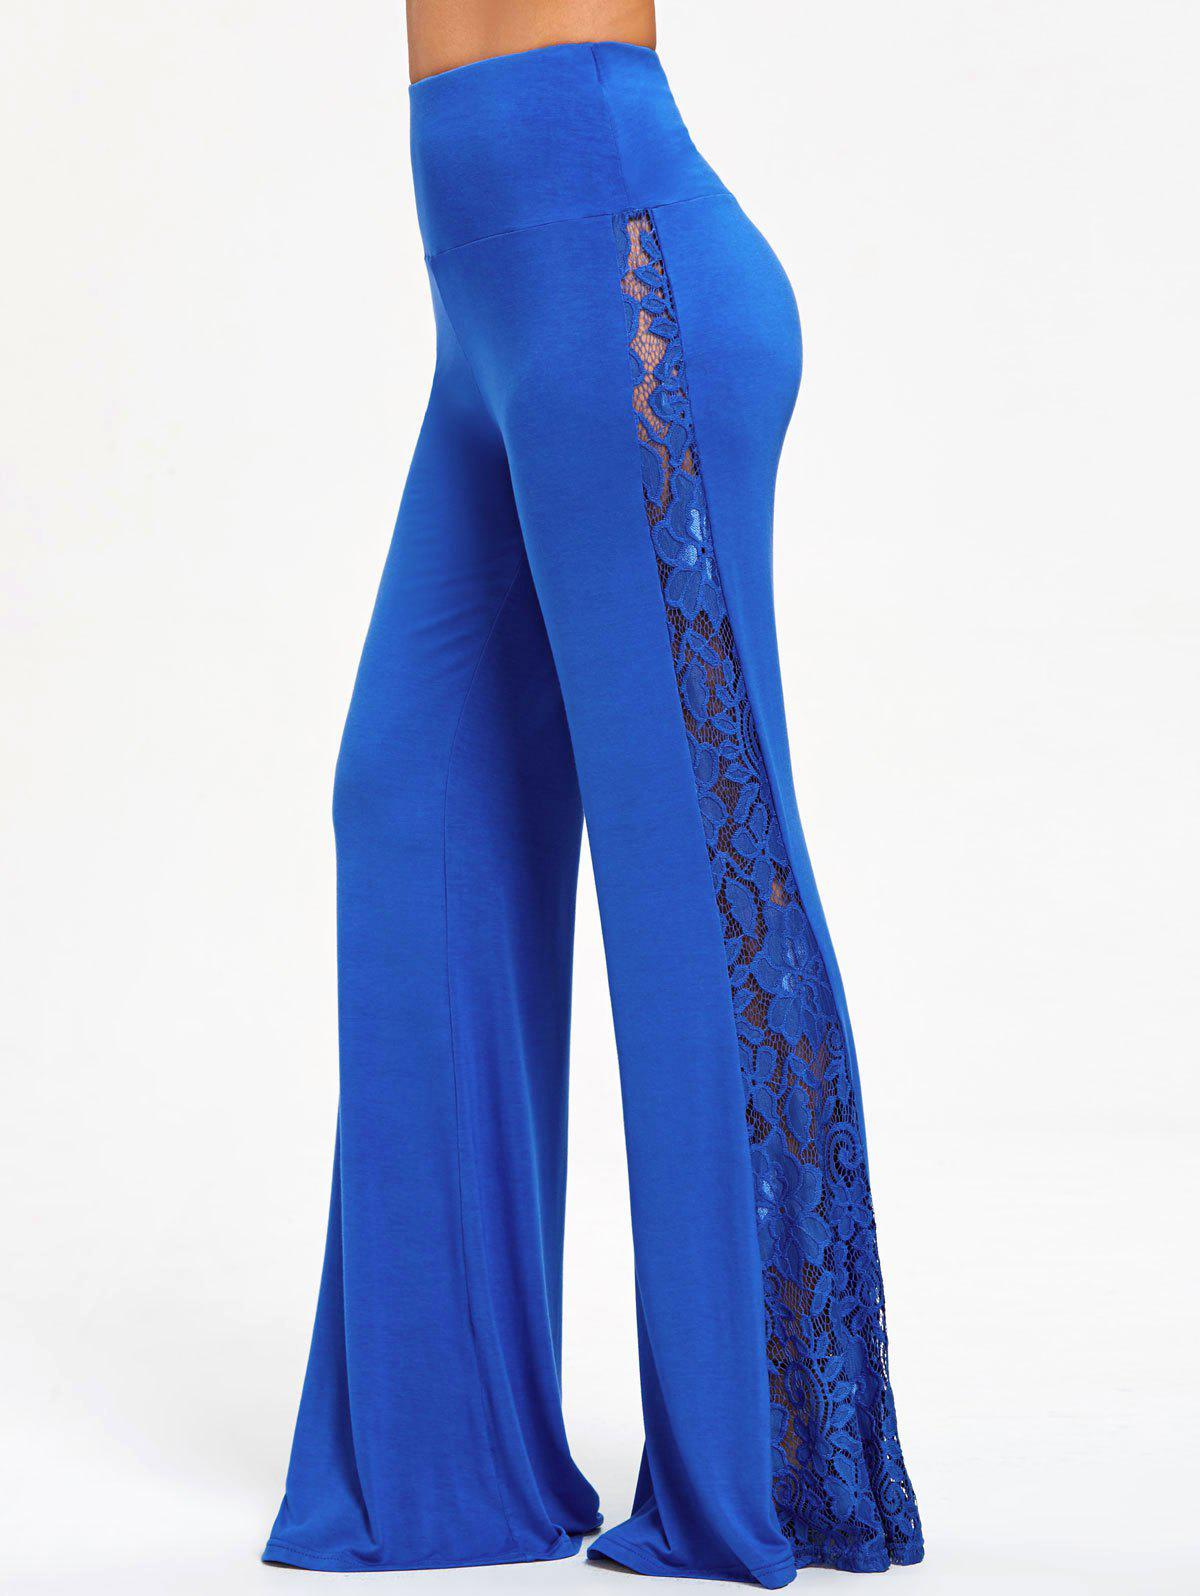 High Waist Lace Insert Wide Leg Pants - BLUE 2XL